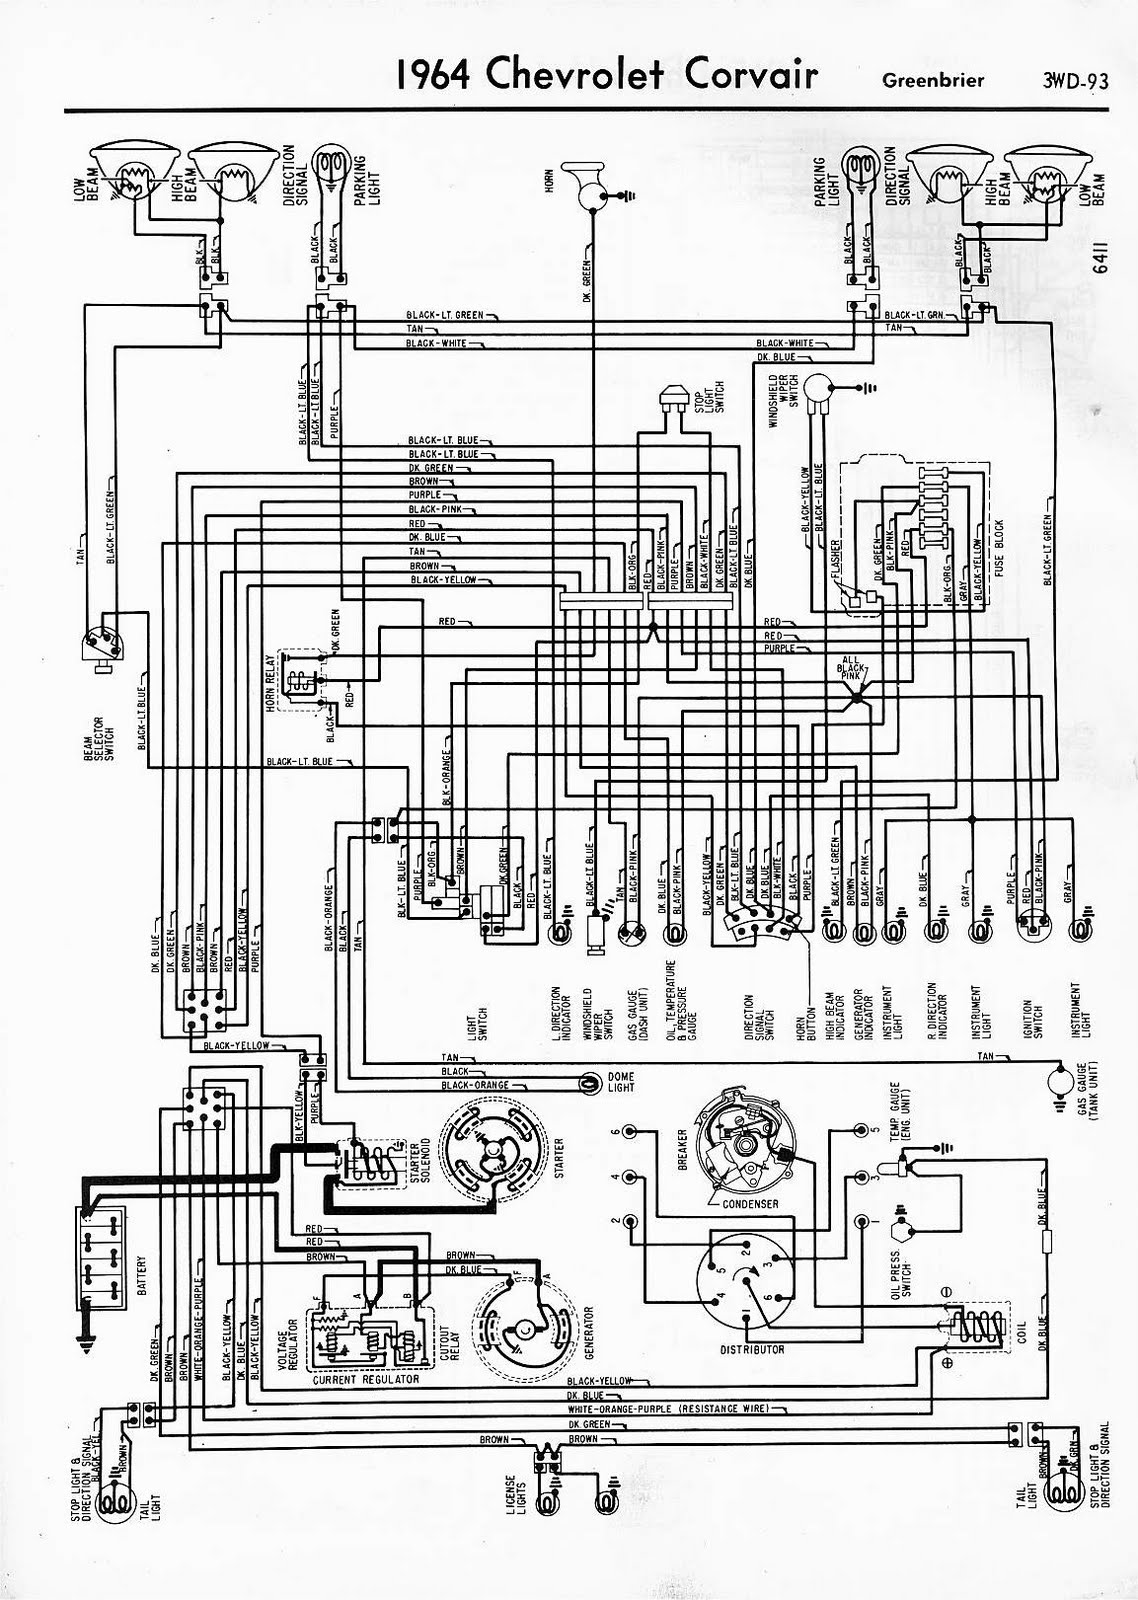 1964 Ford Ignition Switch Diagram 480 Volt 3 Phase Heater Wiring Falcon Instrument 1971 Mercury